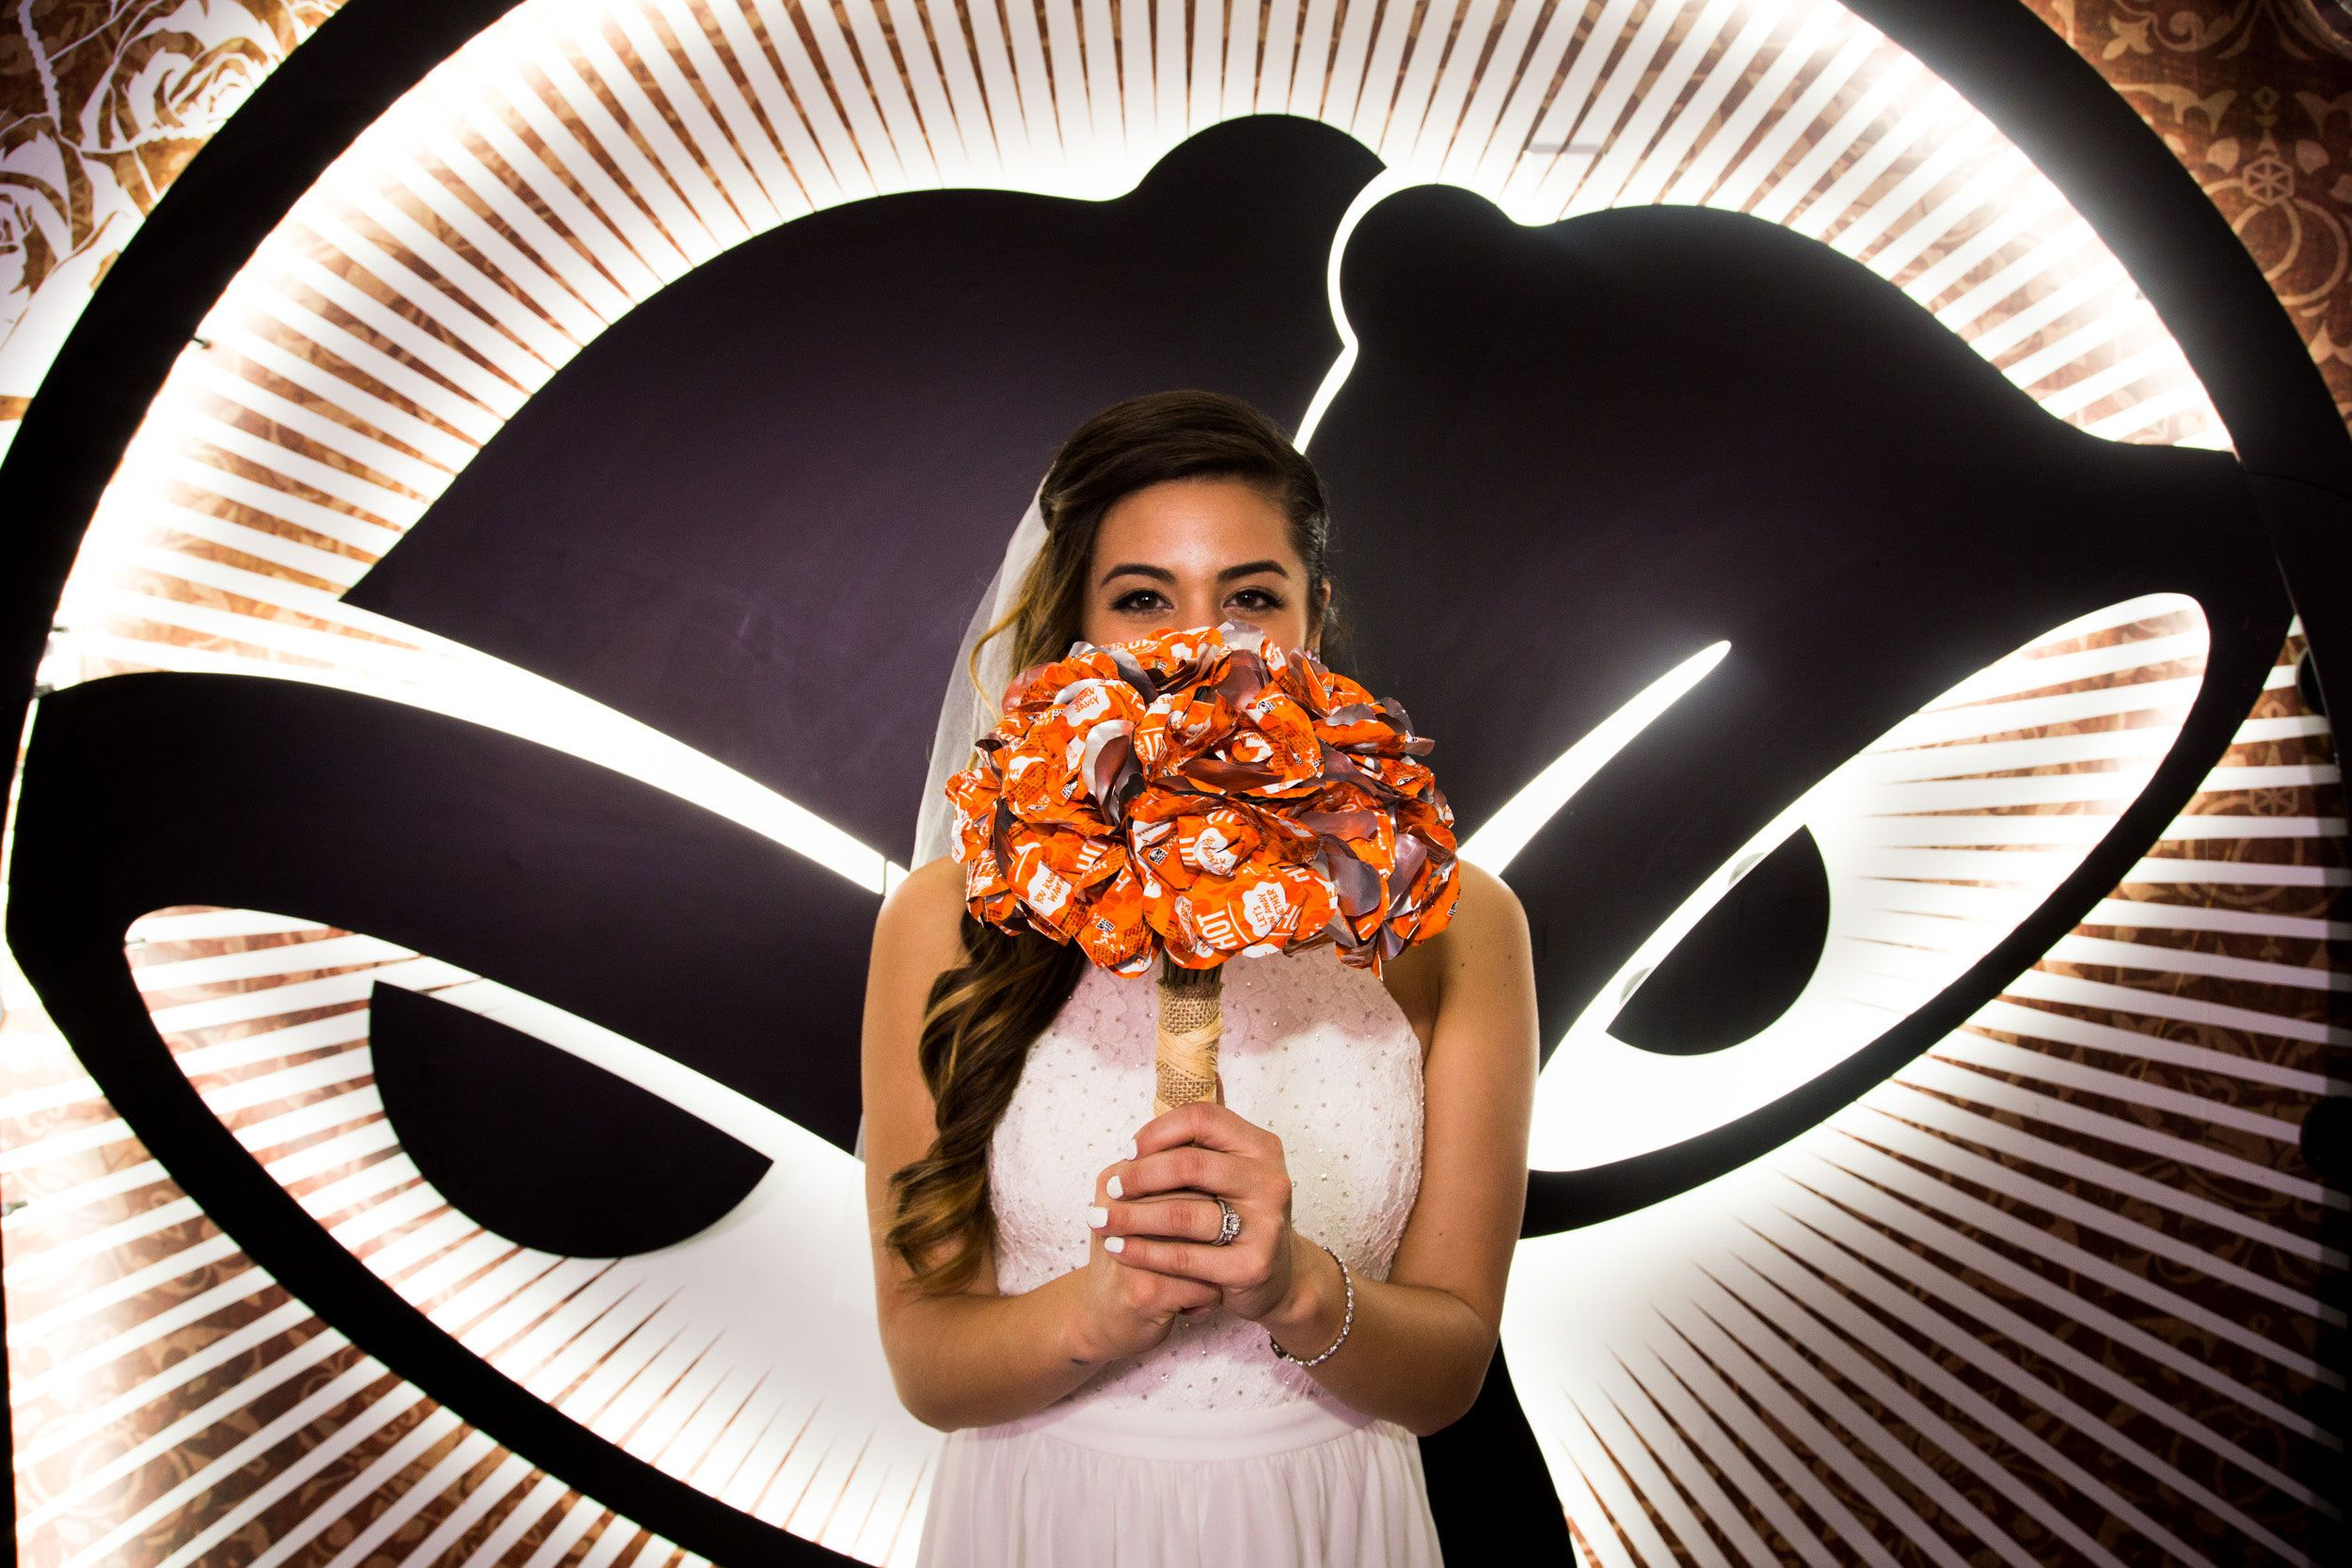 You Can Now Get Married At Taco Bell For 600 Taco Bell Wedding Alternative Wedding Bouquet Taco Bell